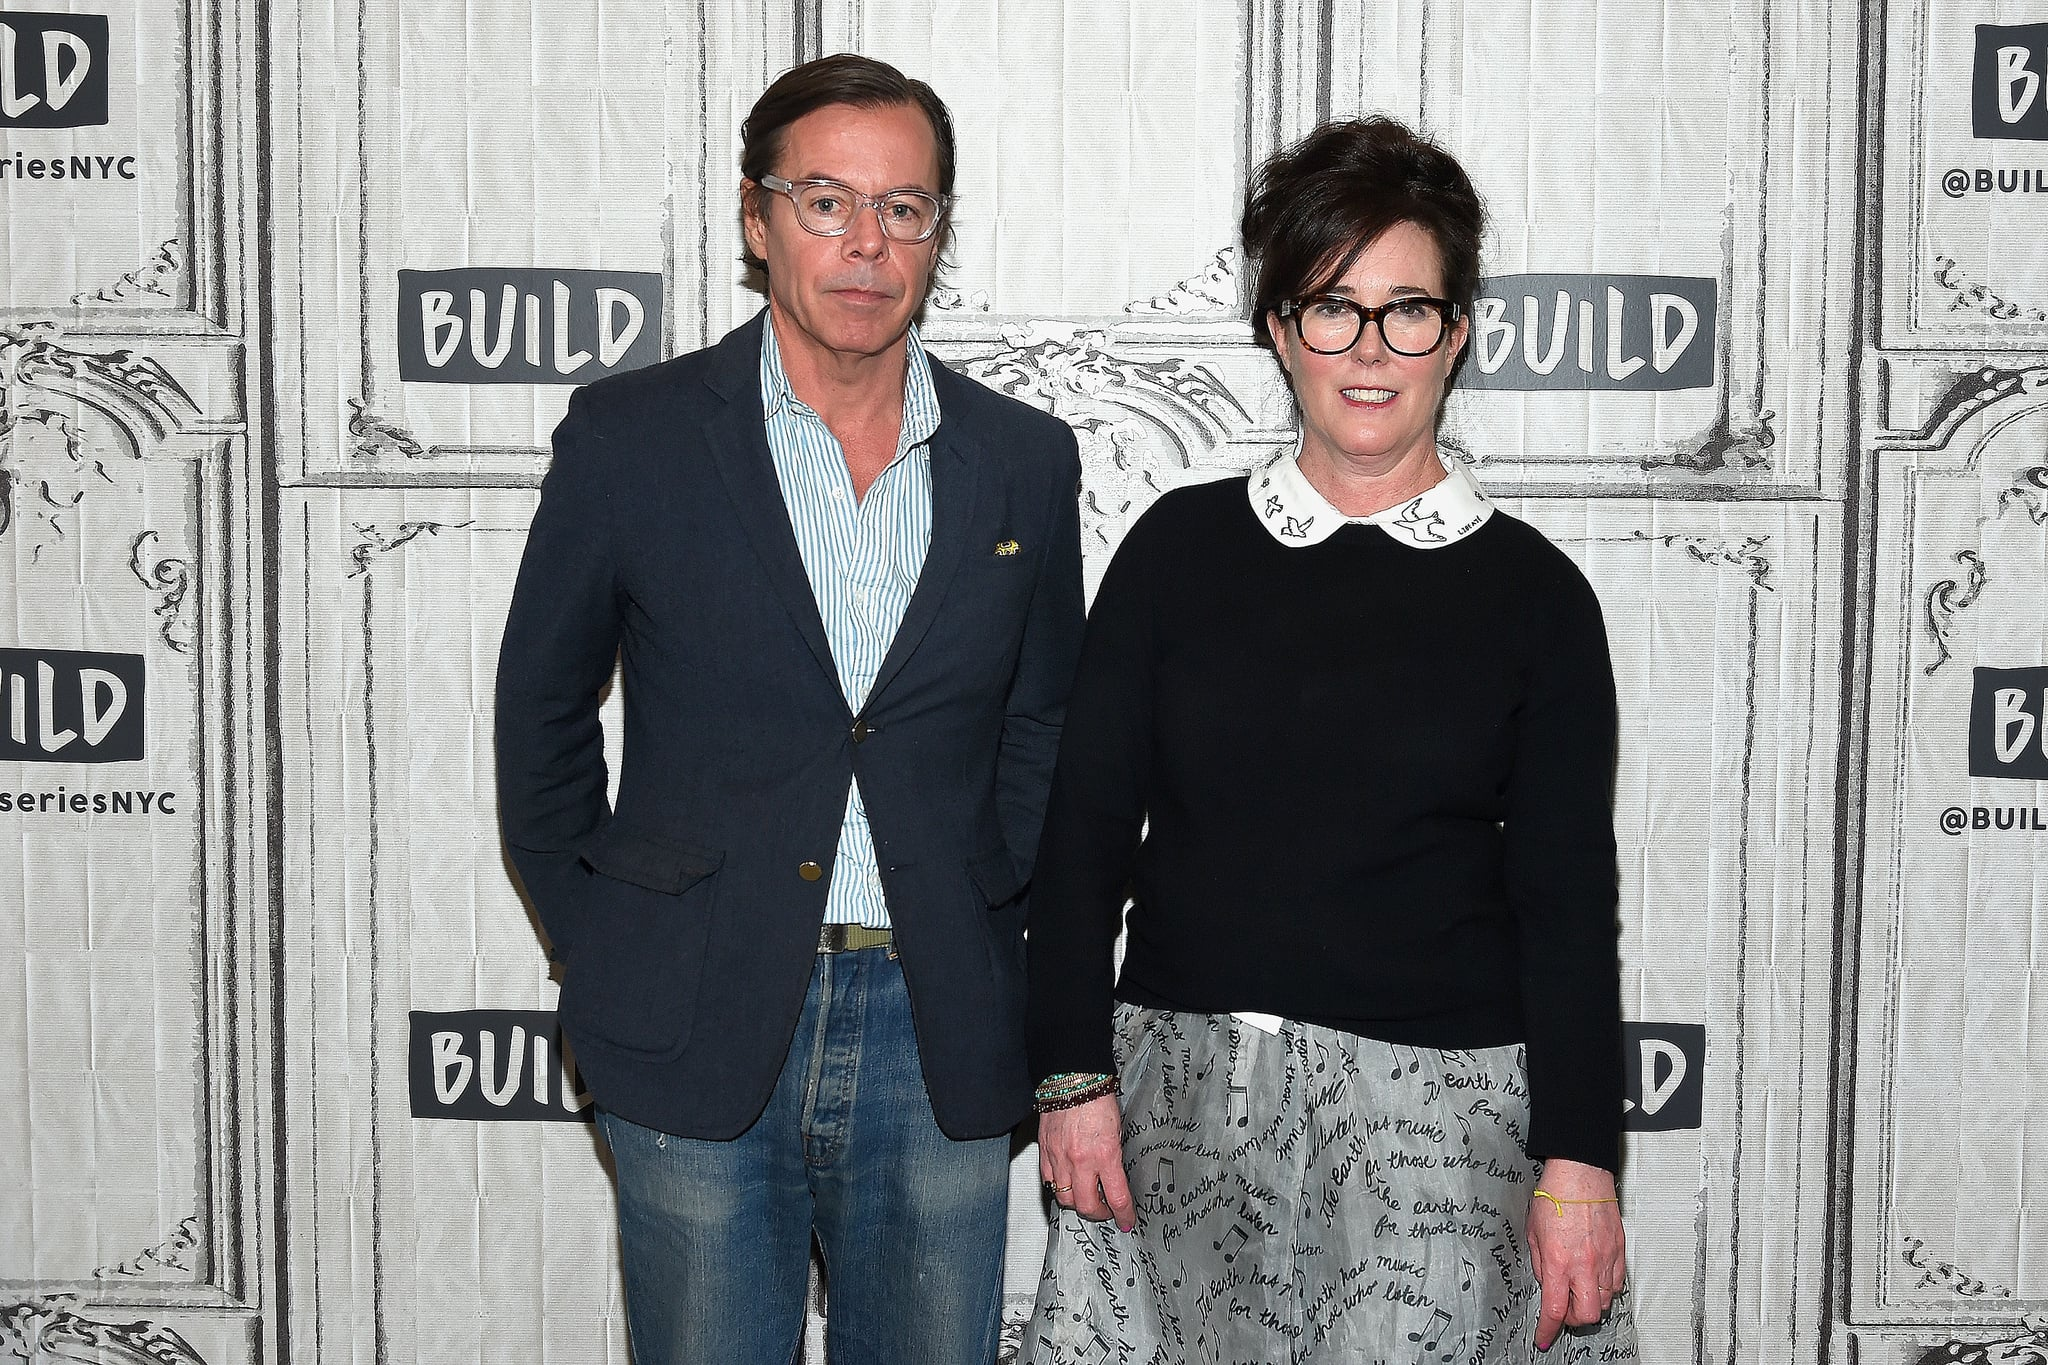 NEW YORK, NY - APRIL 28:  Designers Andy Spade (L) and Kate Spade attend the Build Series at Build Studio on April 28, 2017 in New York City.  (Photo by Ben Gabbe/Getty Images)